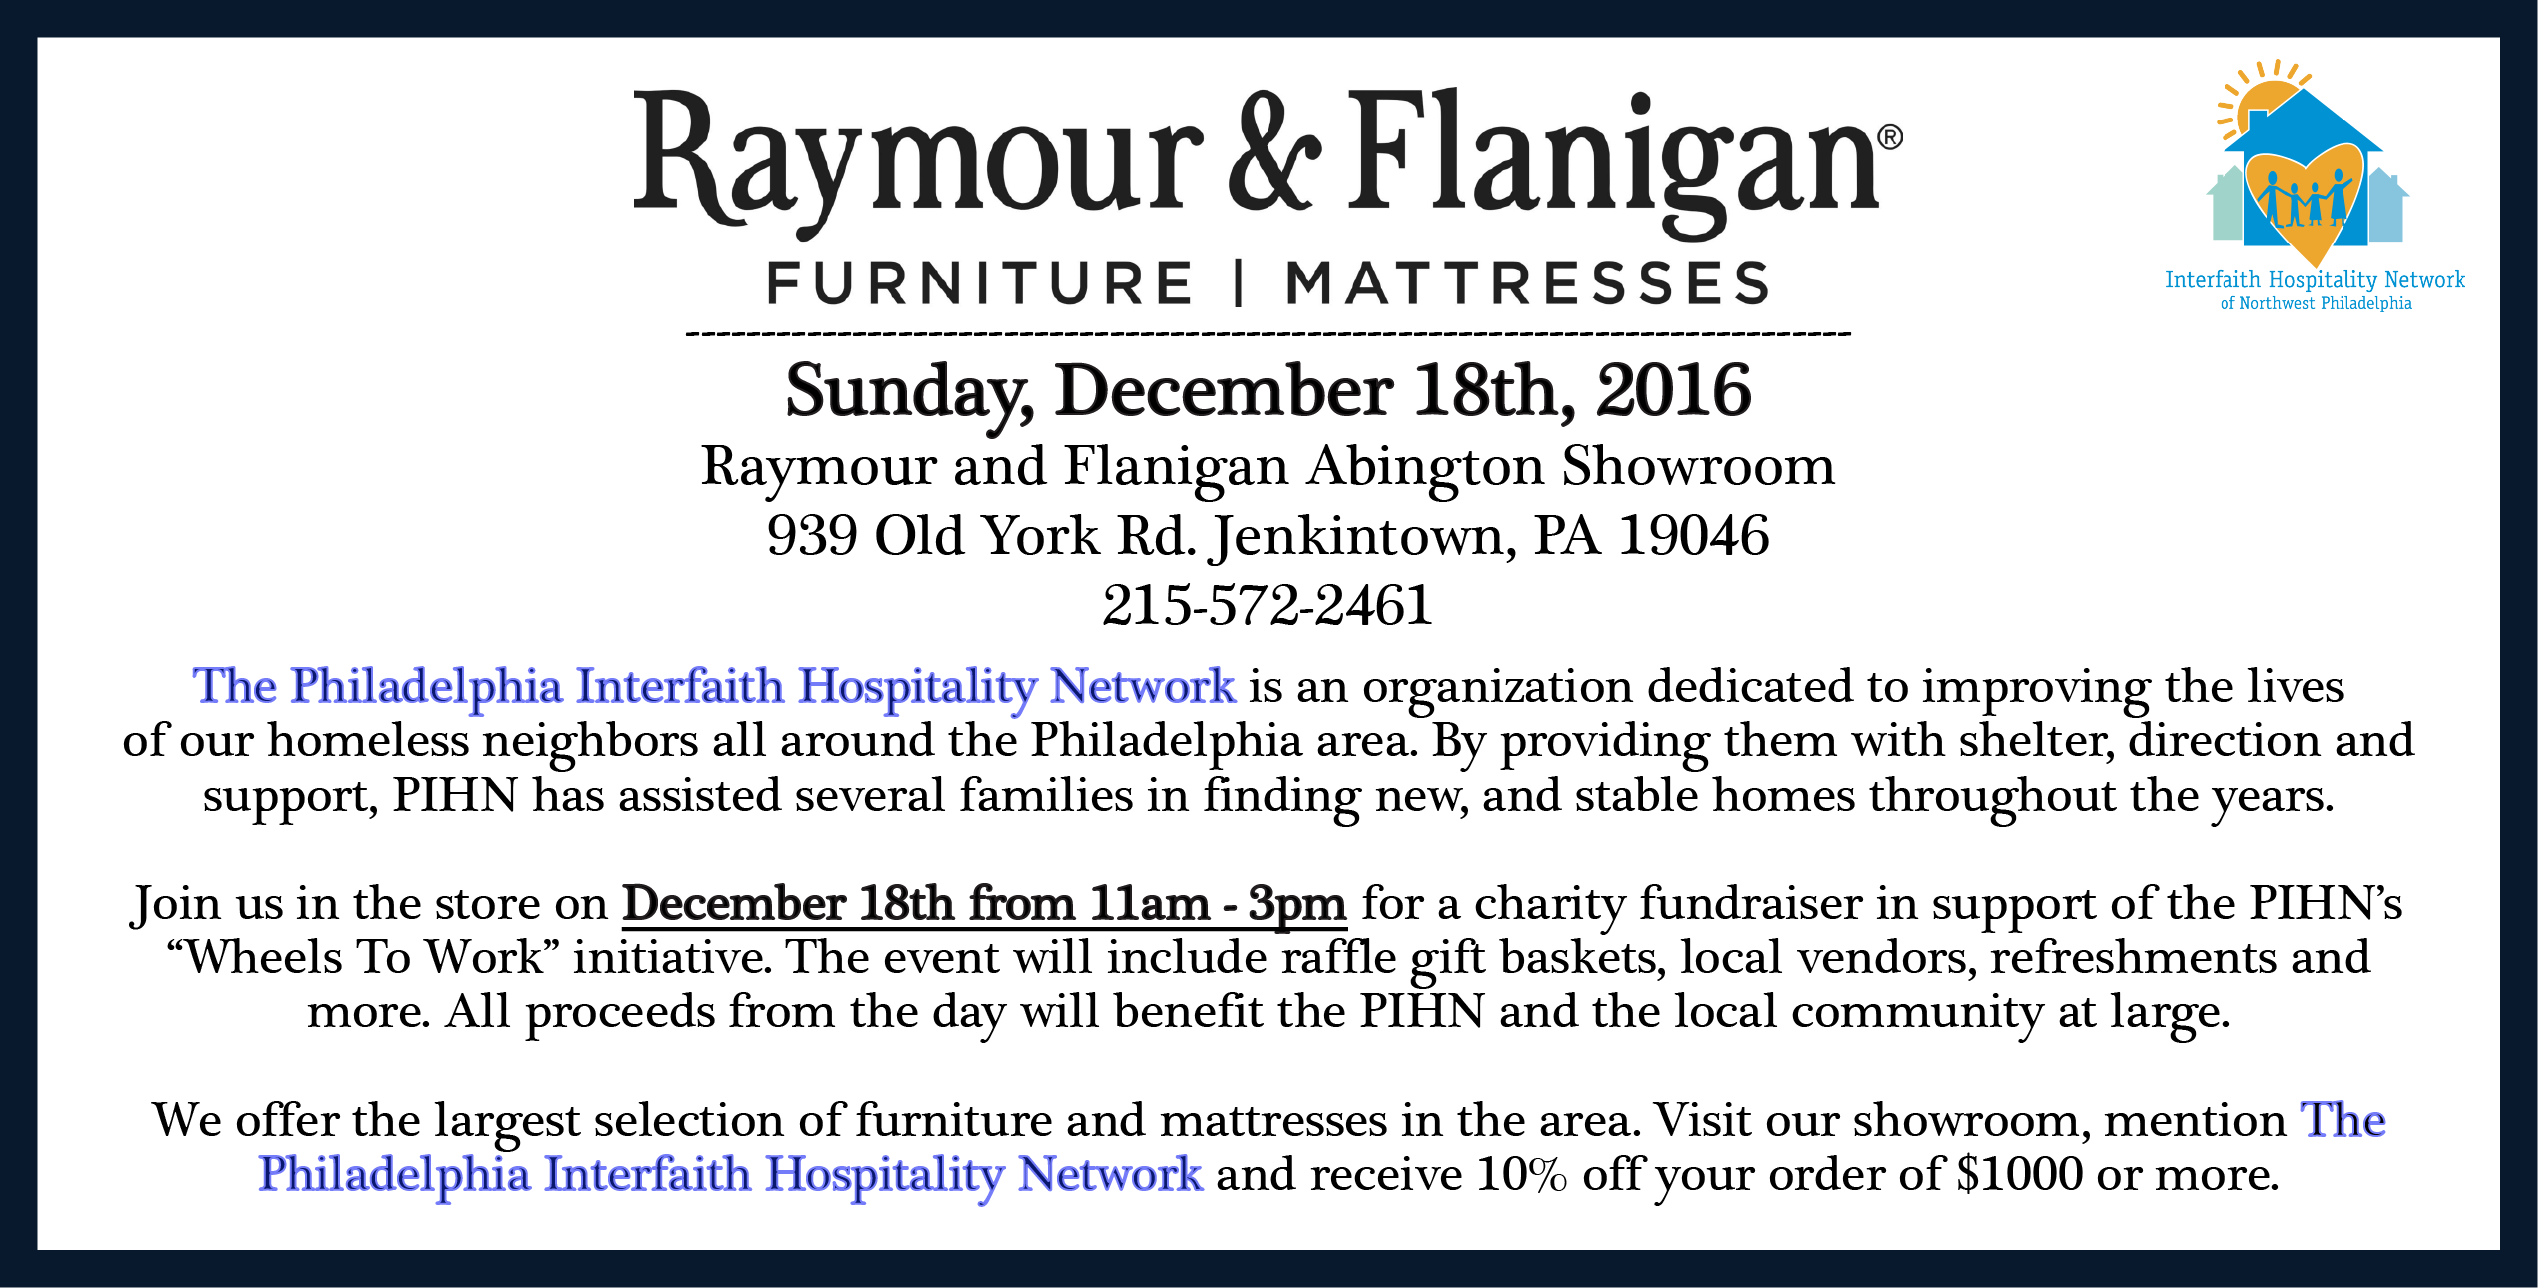 Raymour & Flanigan Fundraiser, December 18th